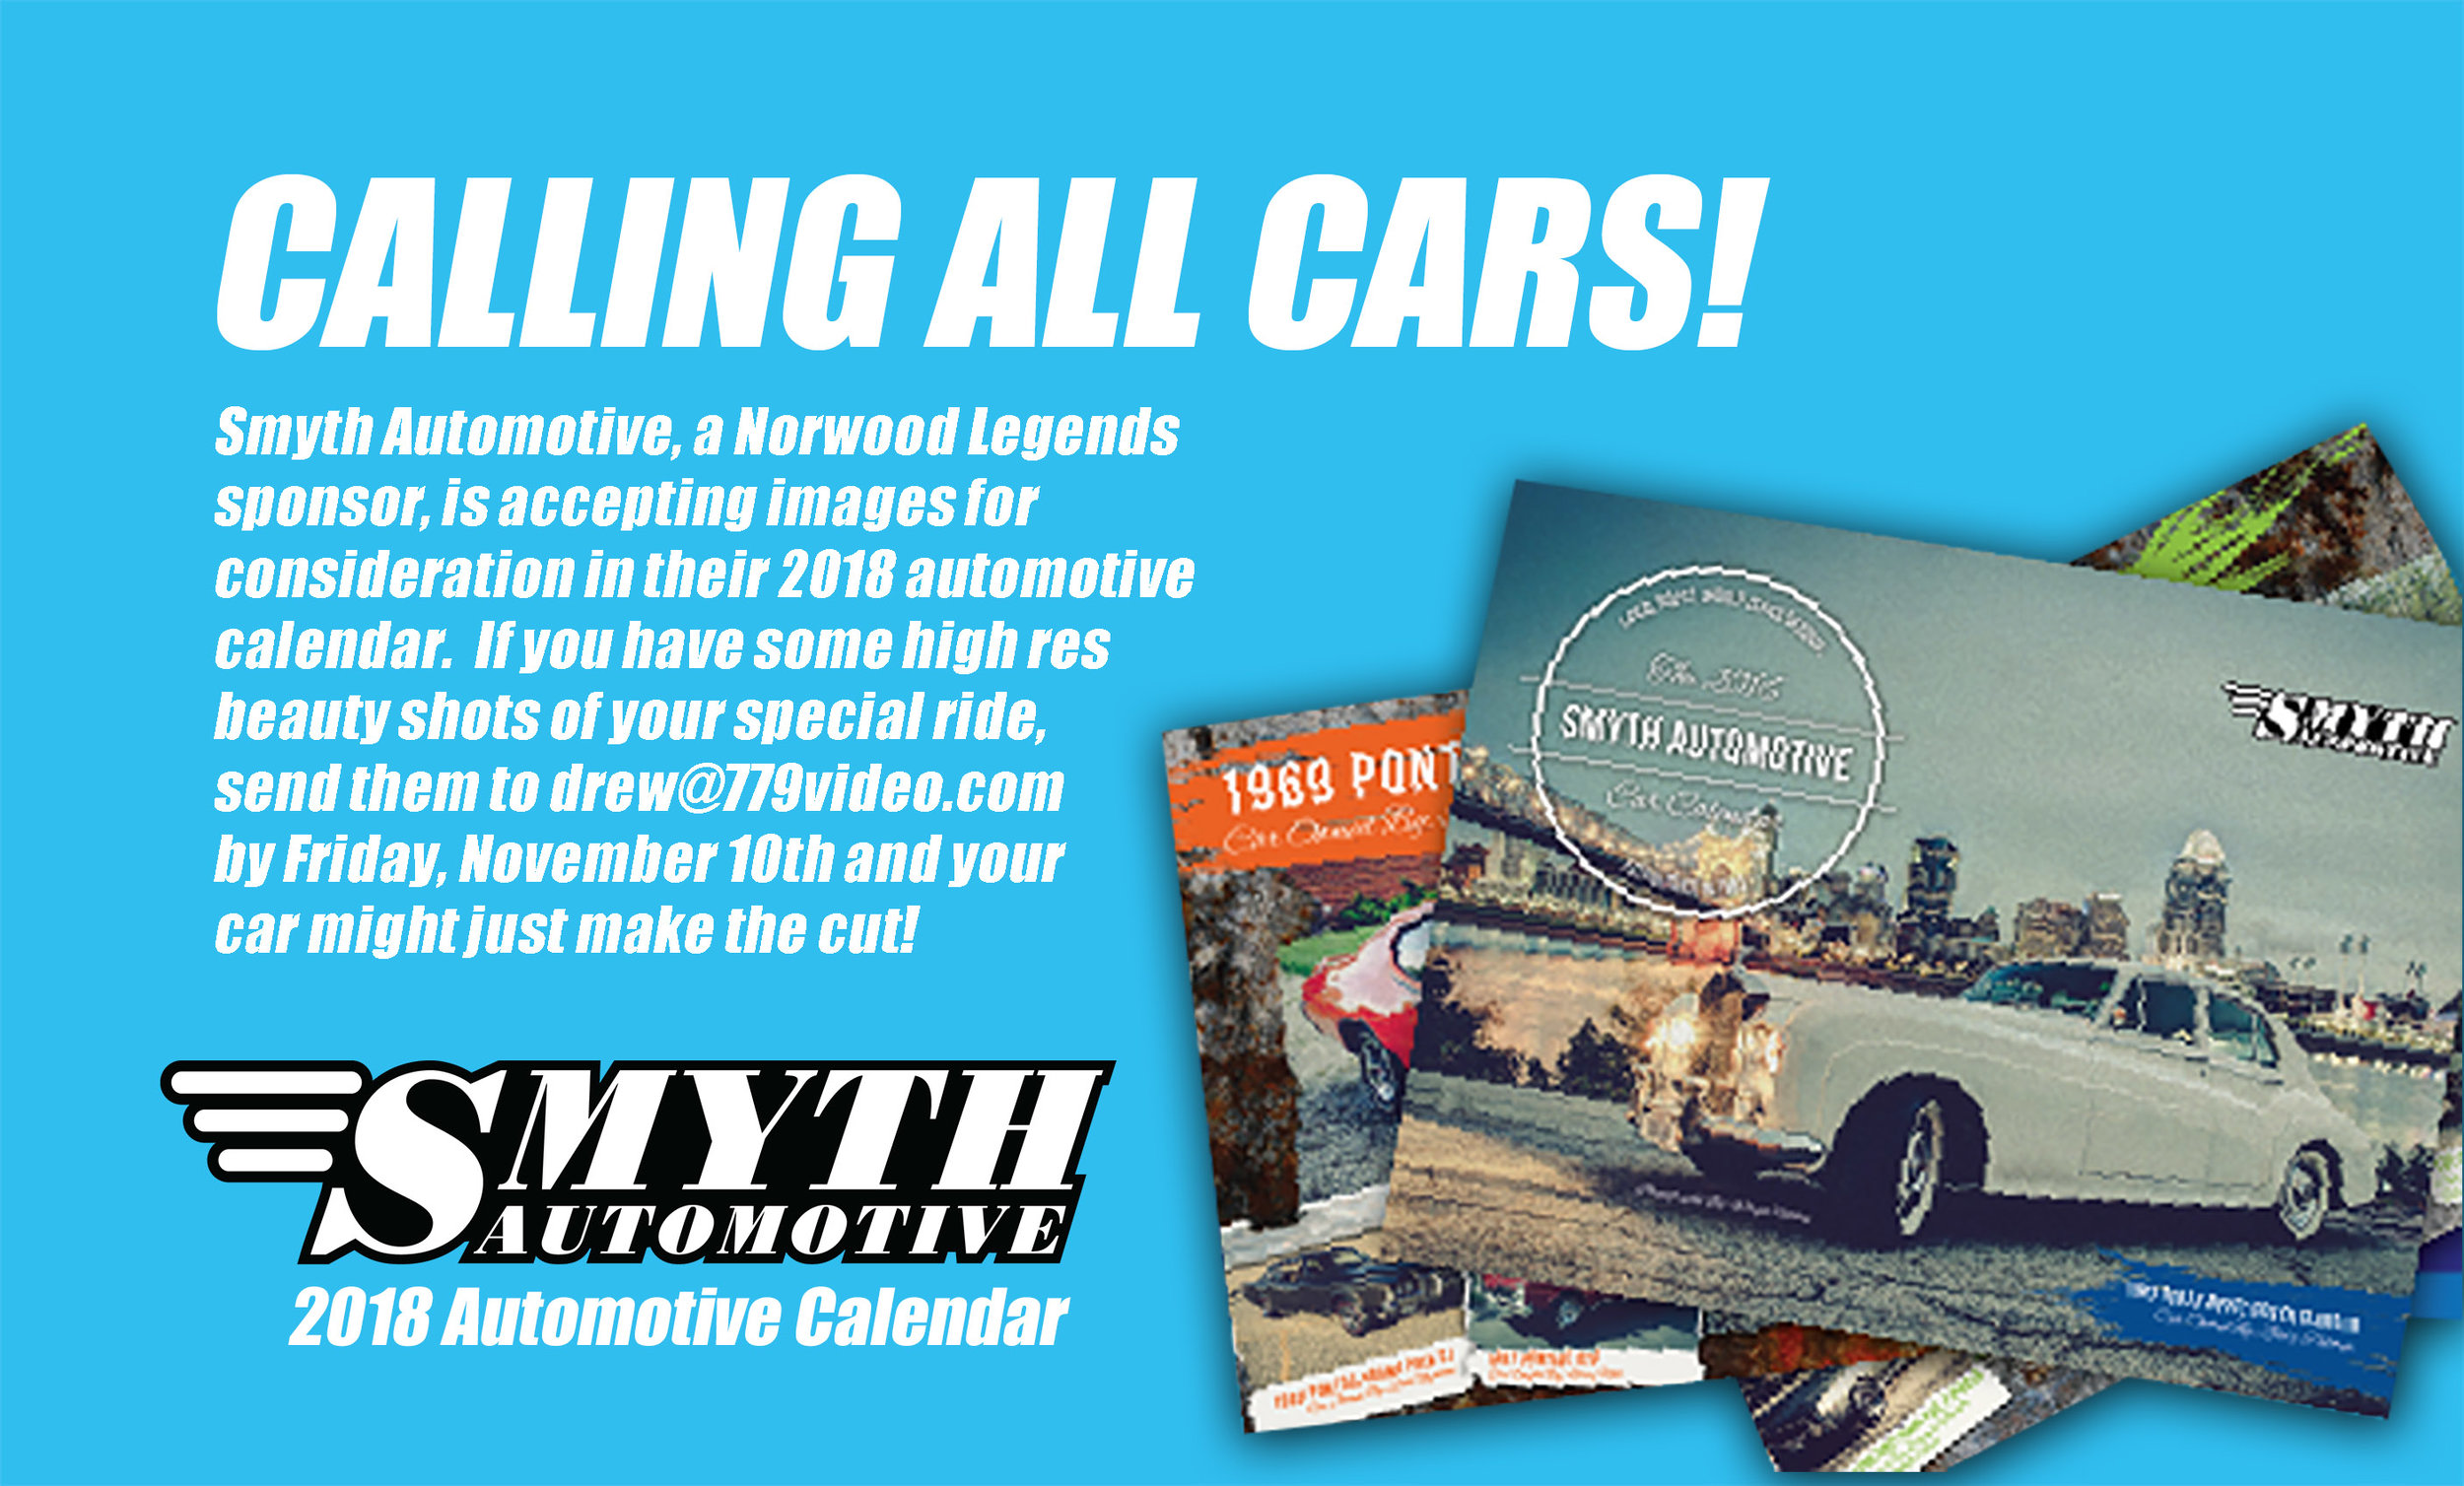 Email your best high-resolution print-ready beauty shot of your special ride to drew@779video.com by Friday, November 10th and enter for a chance to win a spot in the 2018 Smyth Automotive Calendar!